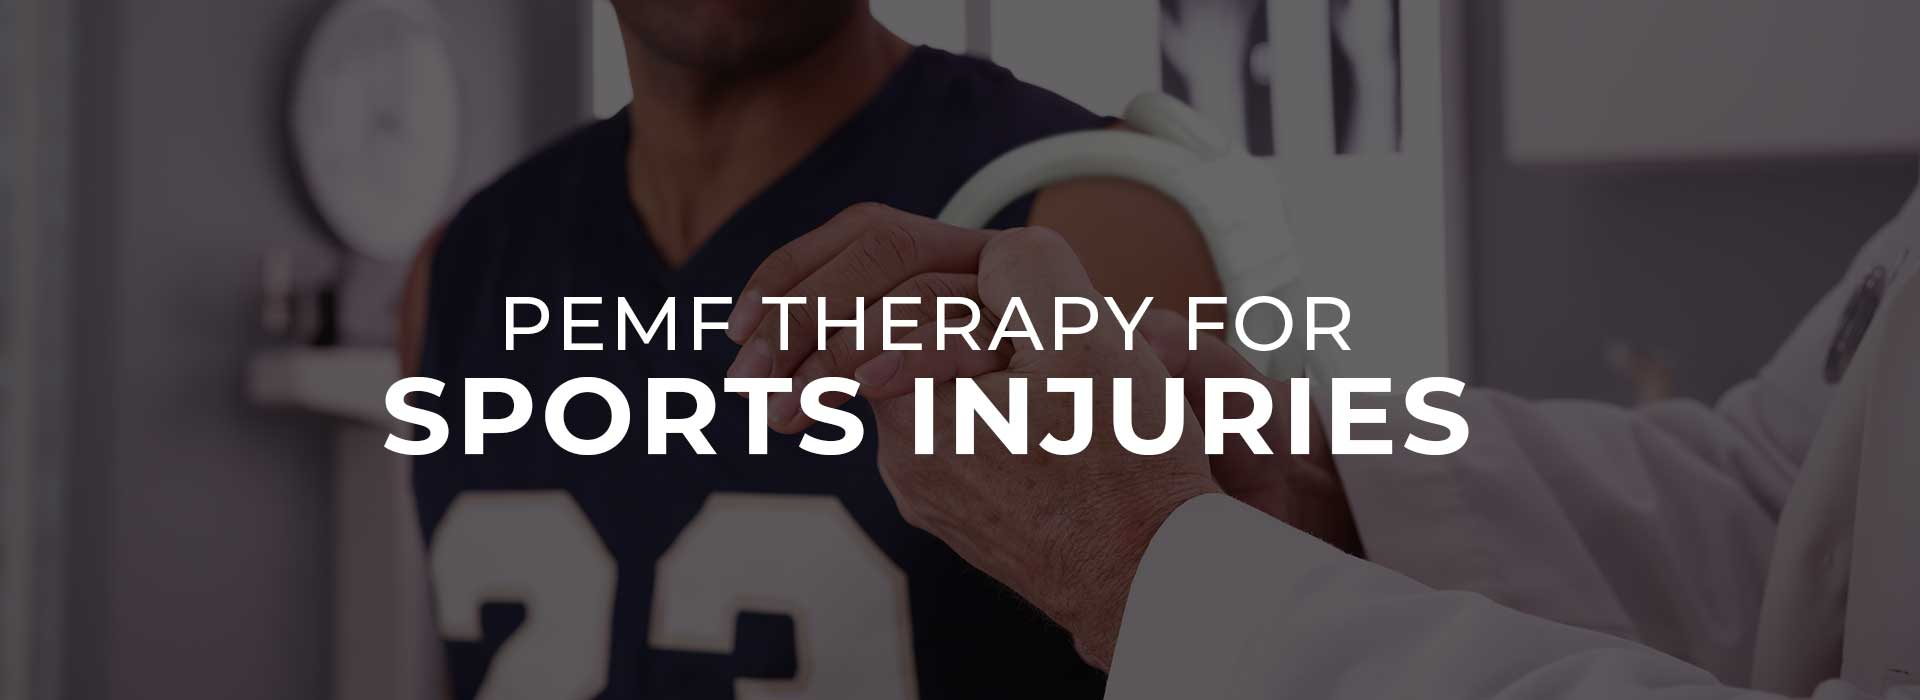 PEMF Therapy for Sports Injuries